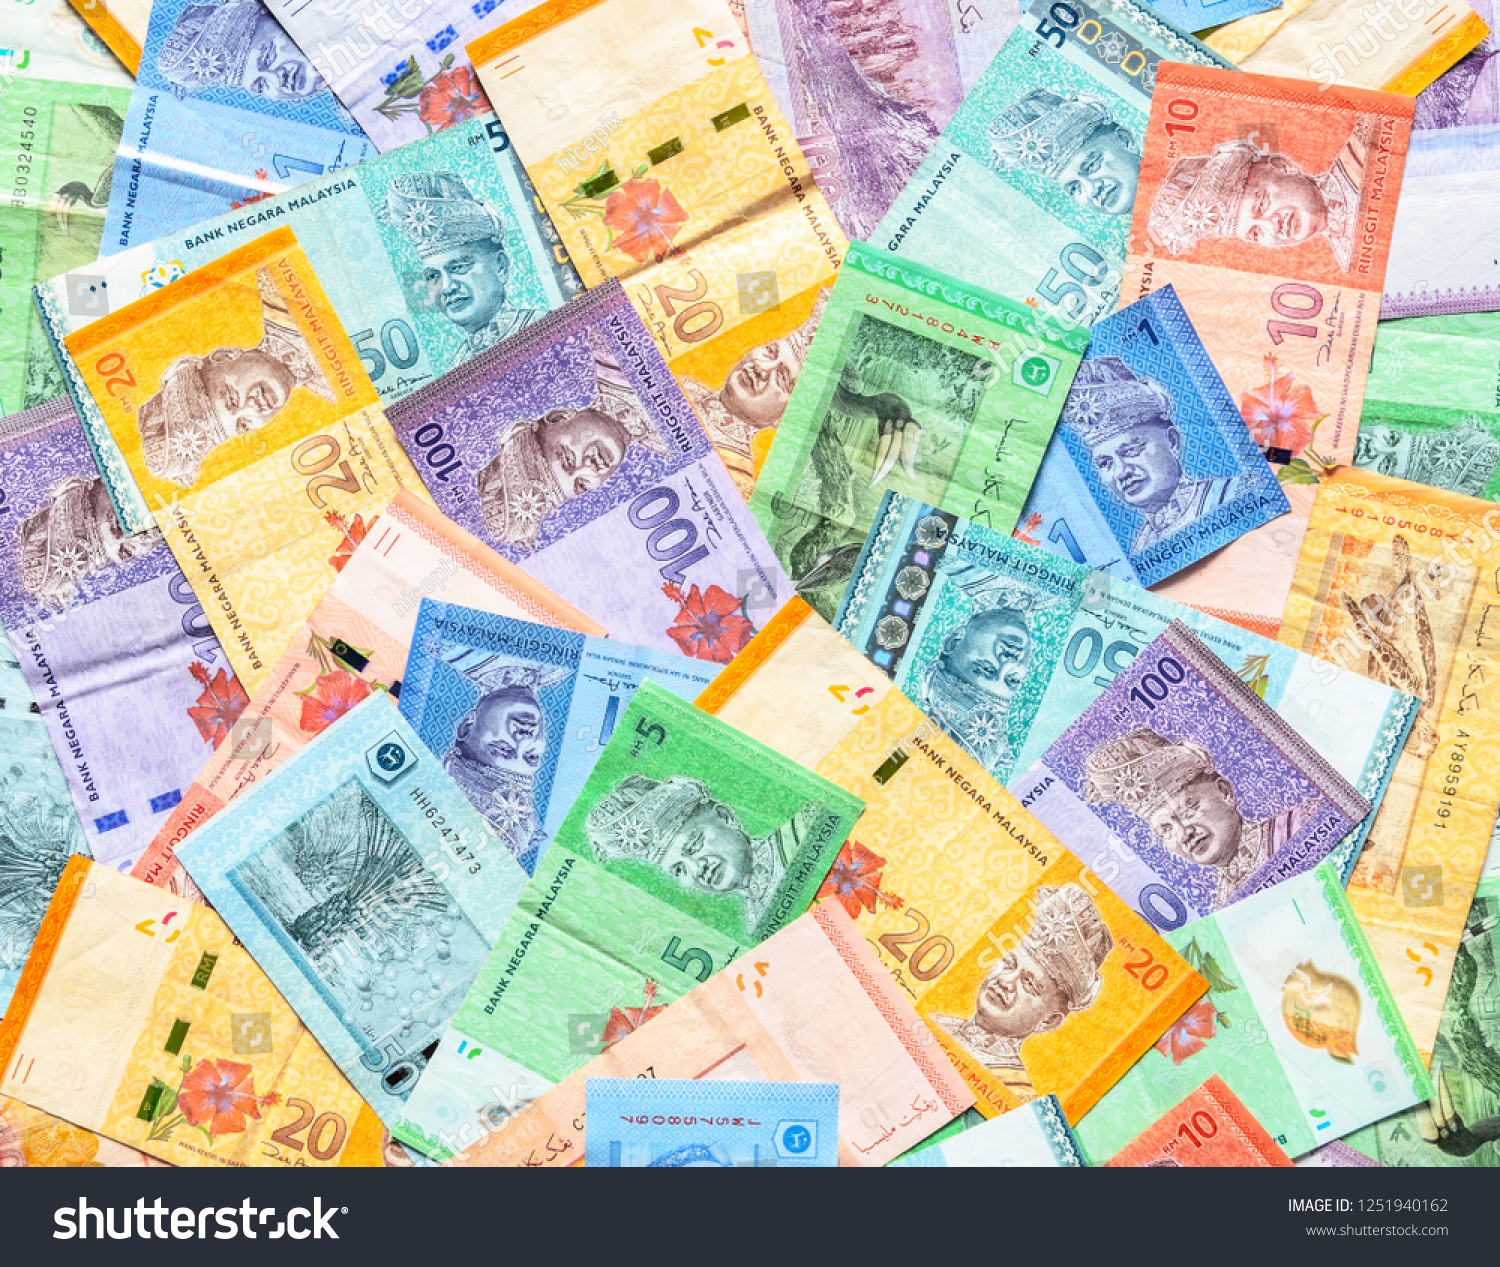 Malaysia Currency Malaysian Ringgit Banknotes Background Stock Photo